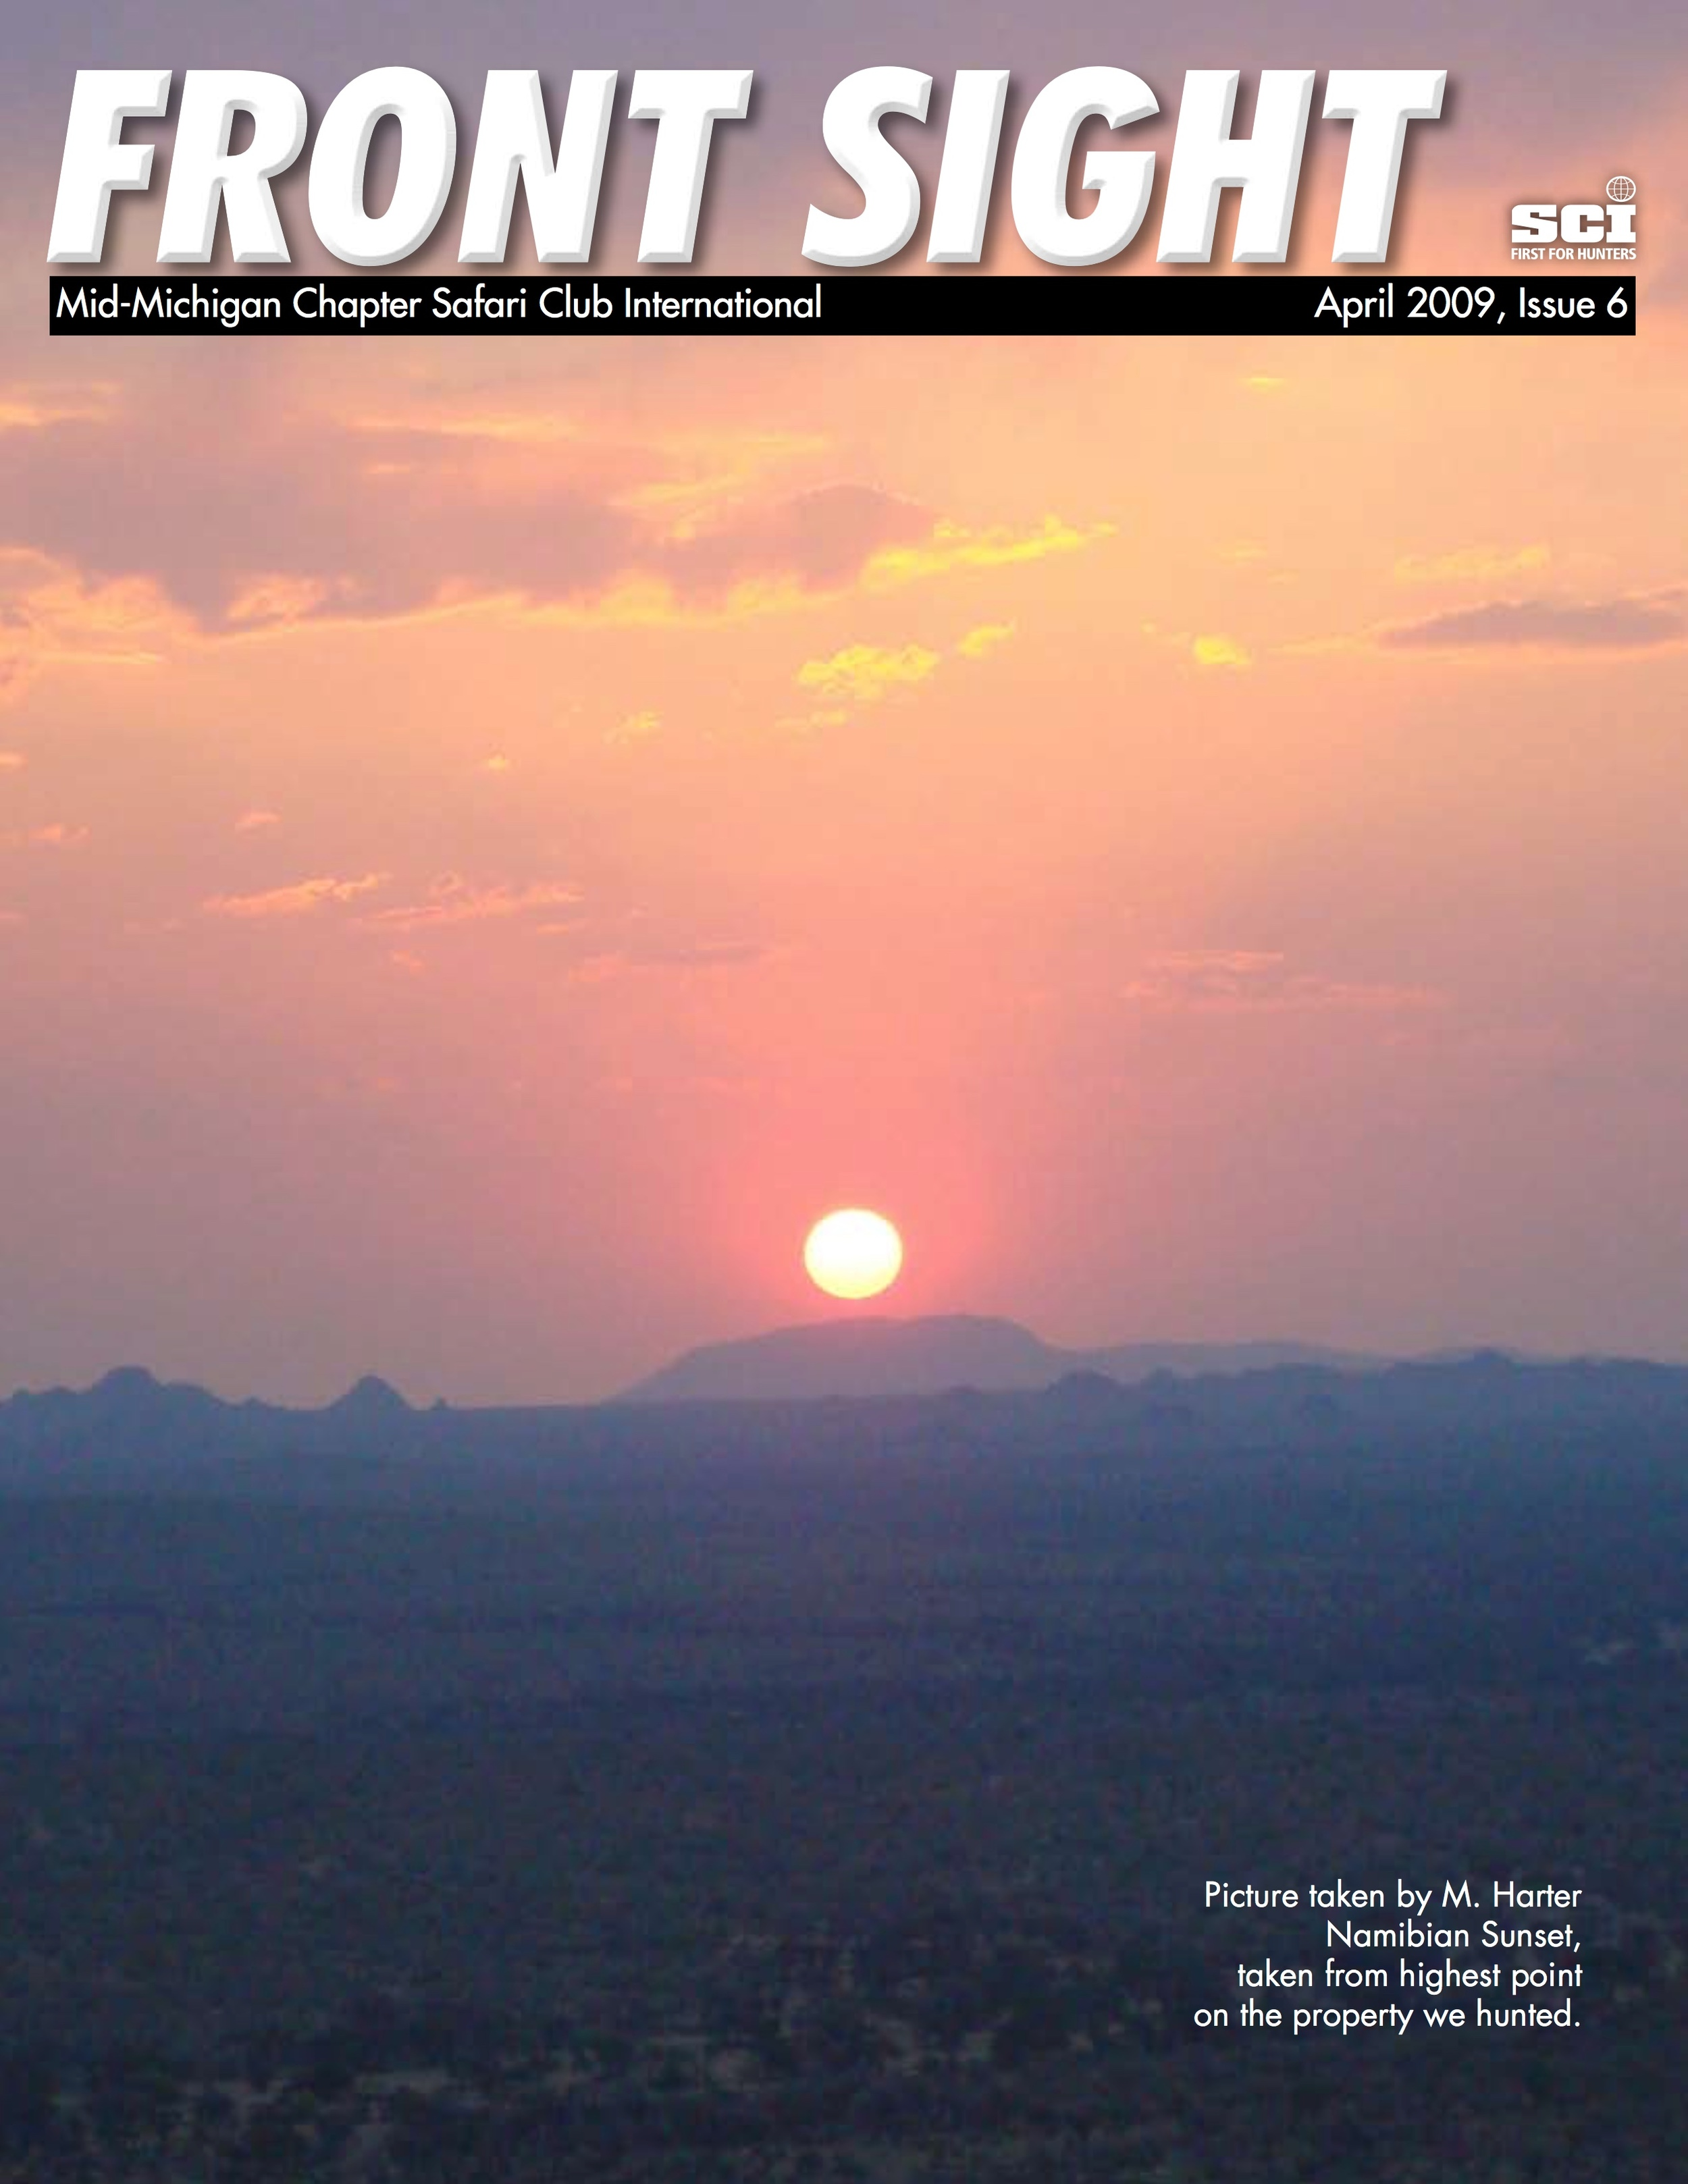 Issue 6, April 2009